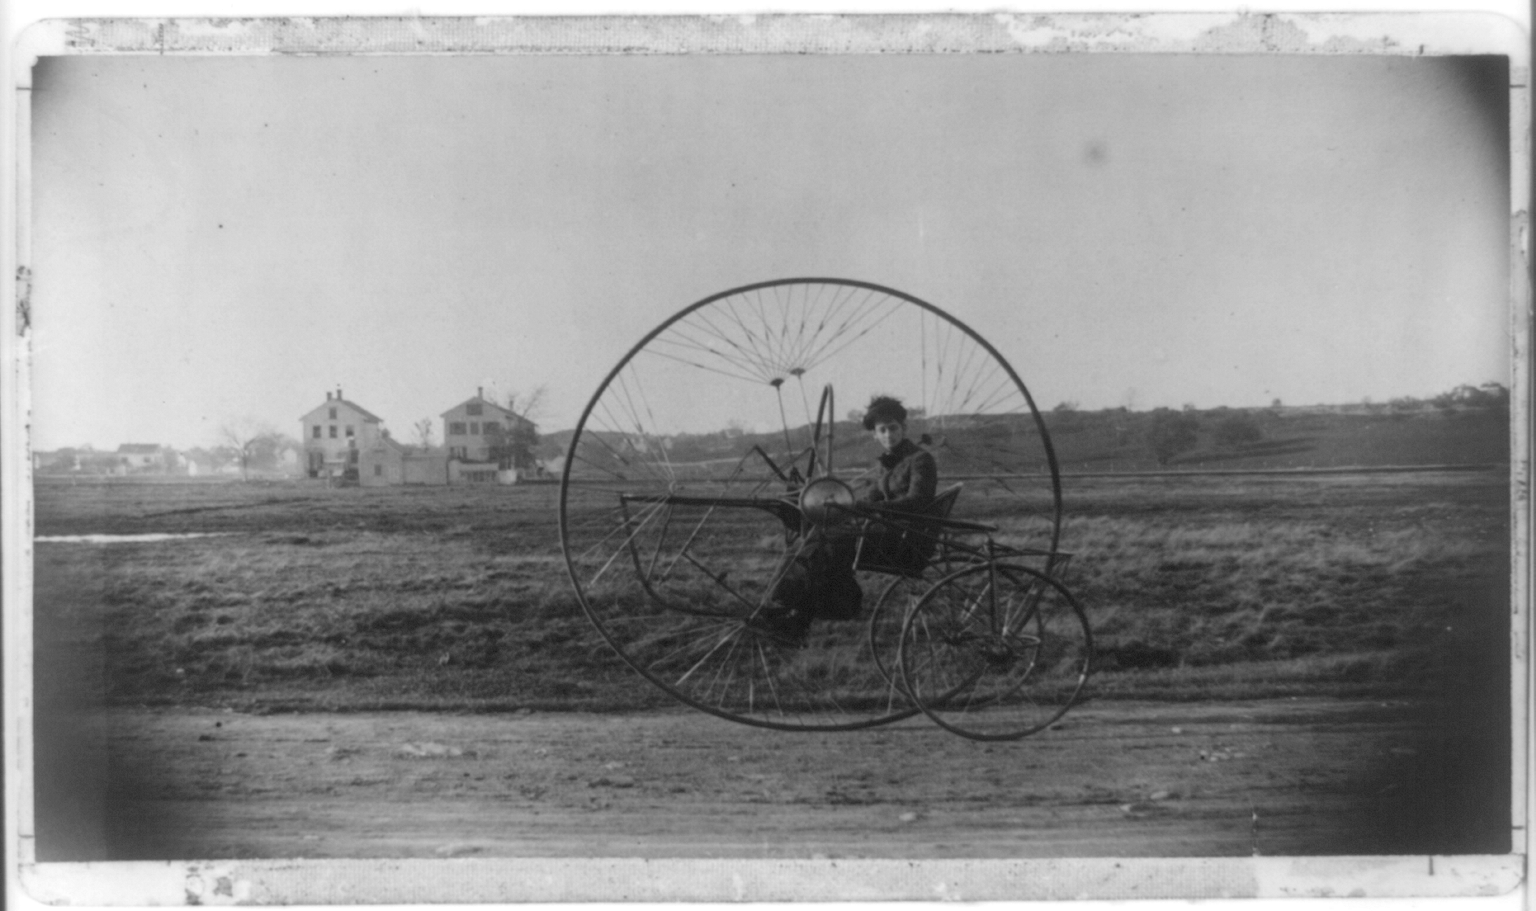 View of Oldreive's new tricycle; the New Iron Horse, with a lady inside